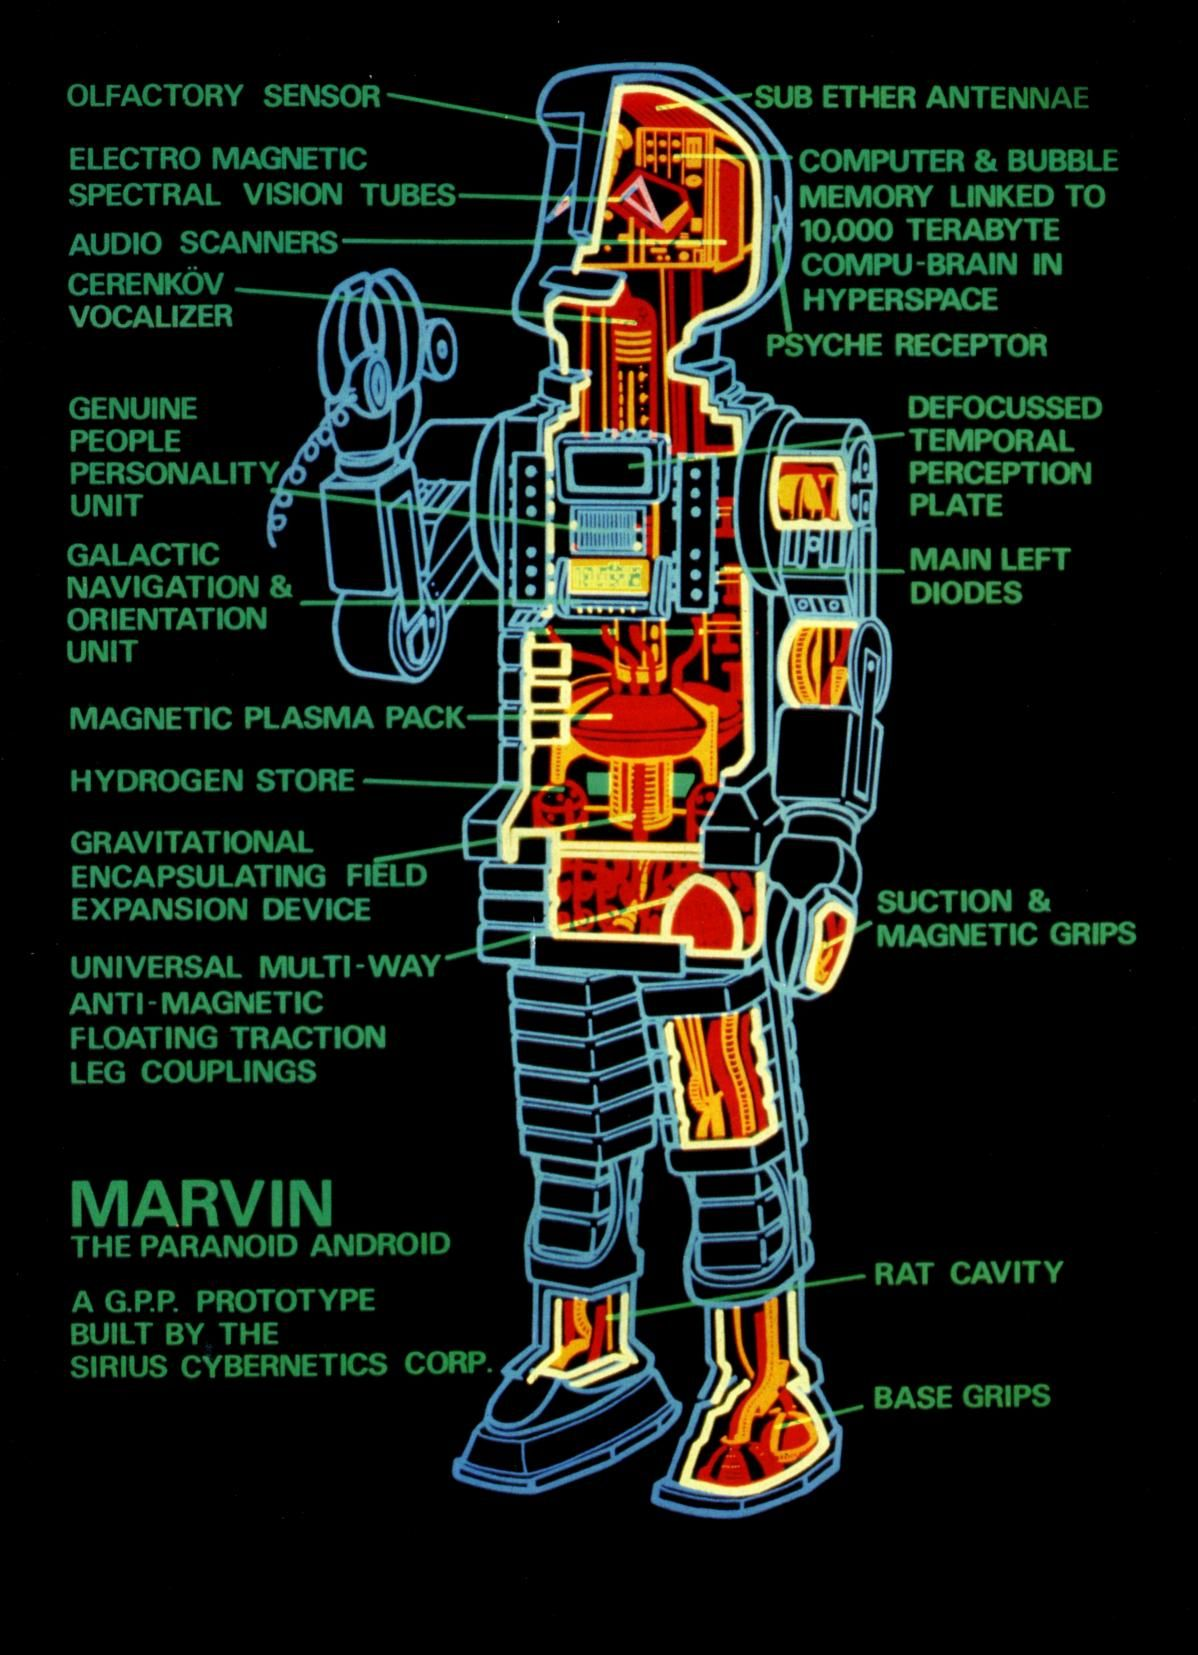 Marvin the 'paranoid android', from The HitchHiker's